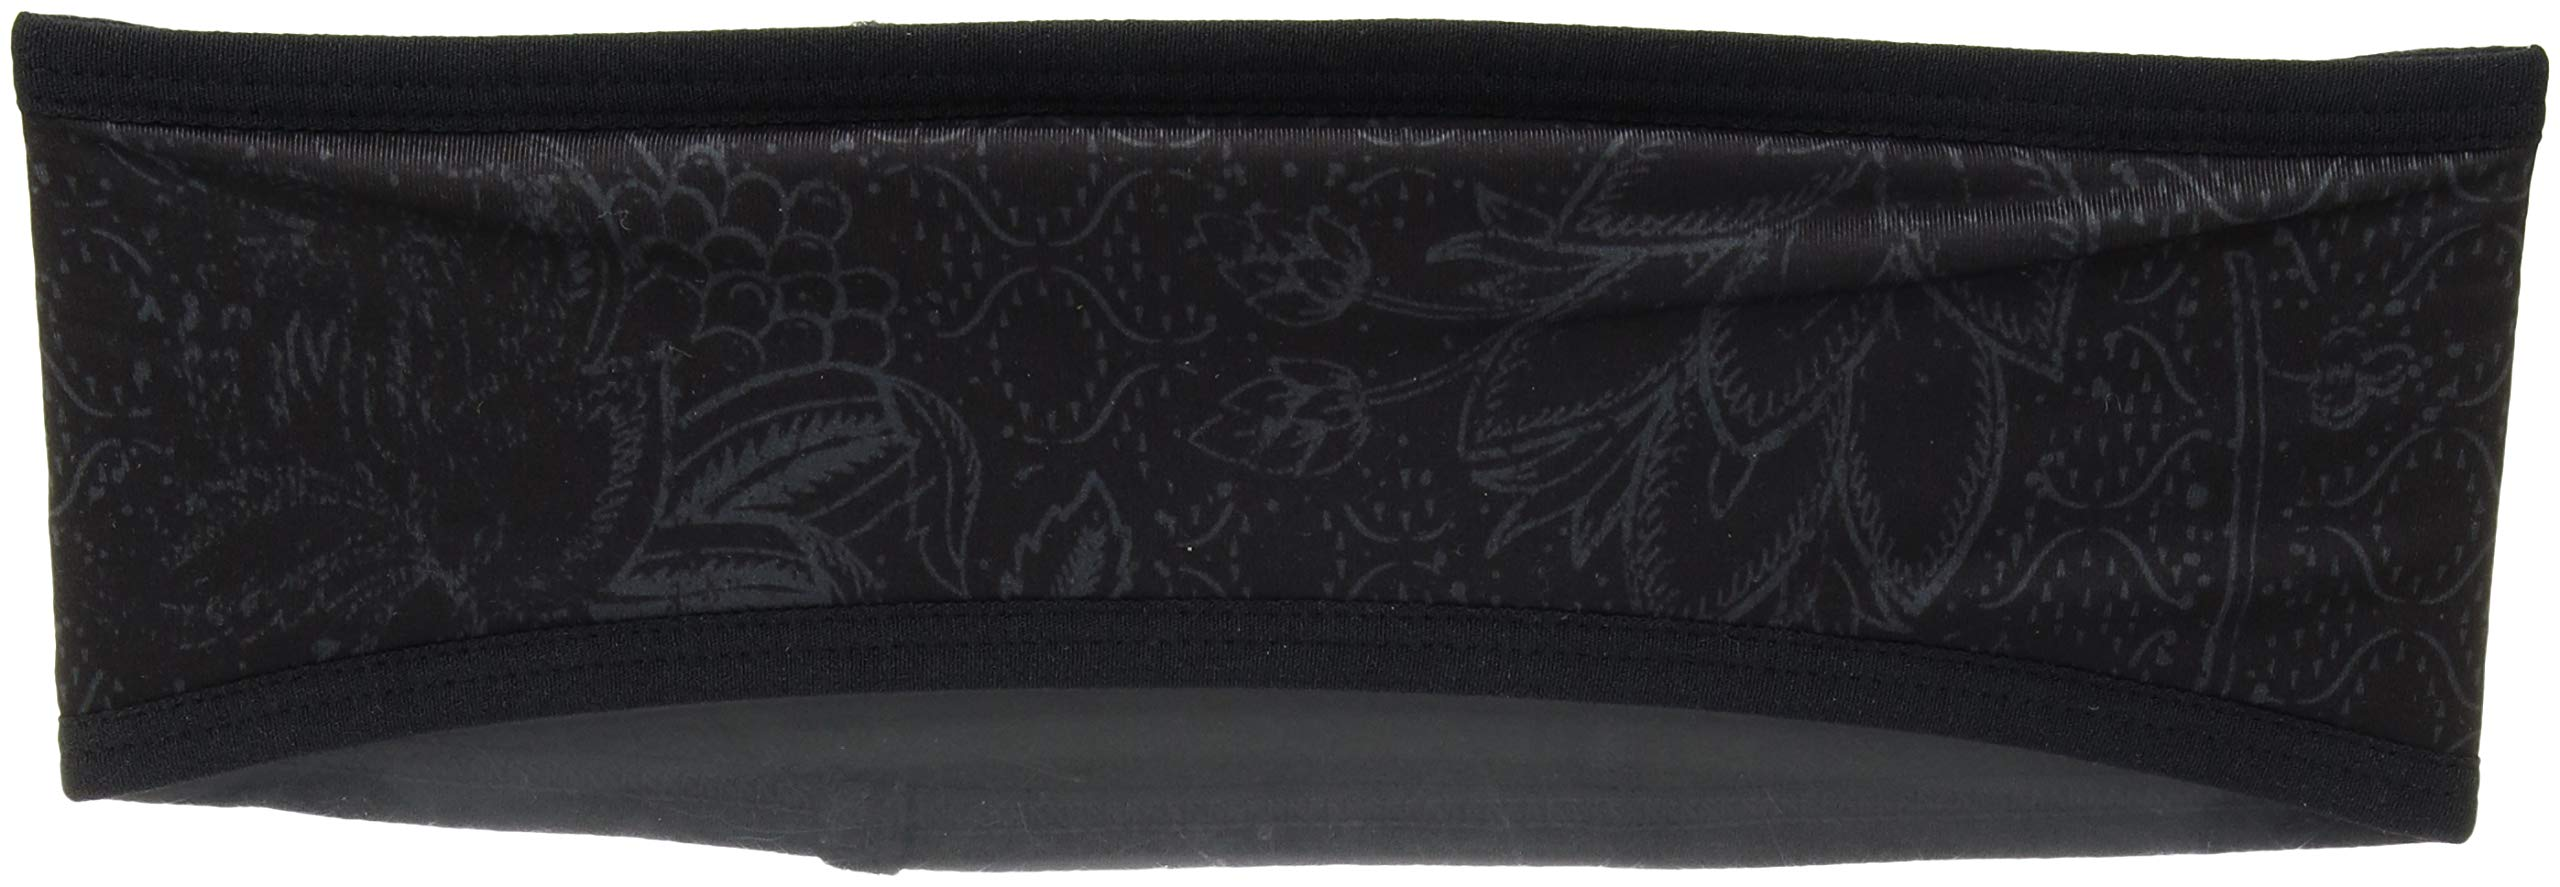 prAna Women's Kenmont Headband Cold Weather Hats, One Size, Black Rosewood